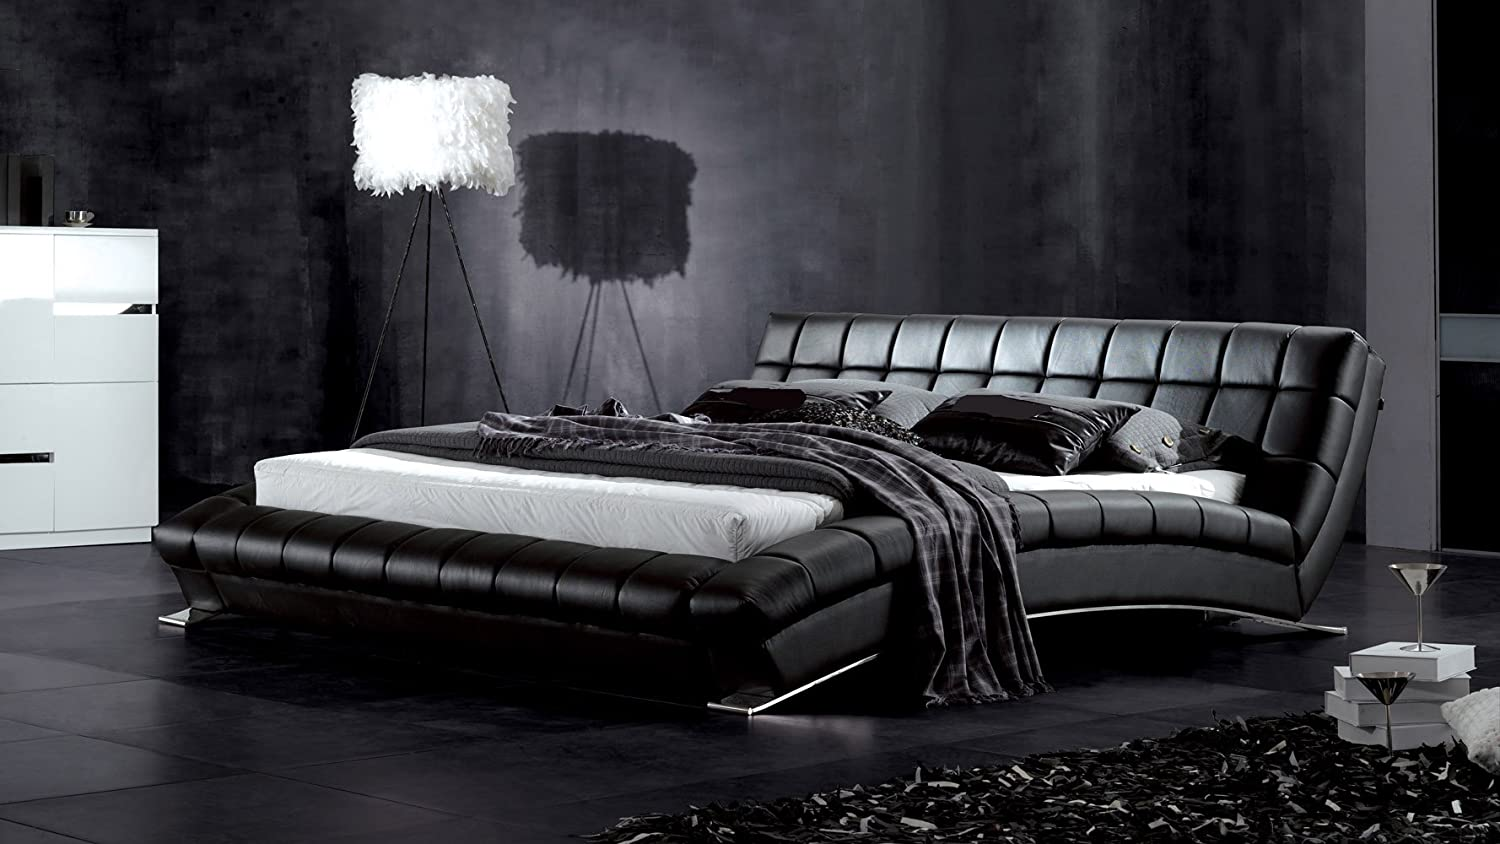 Top 8 Best Curved Platform Beds Reviews in 2020 6